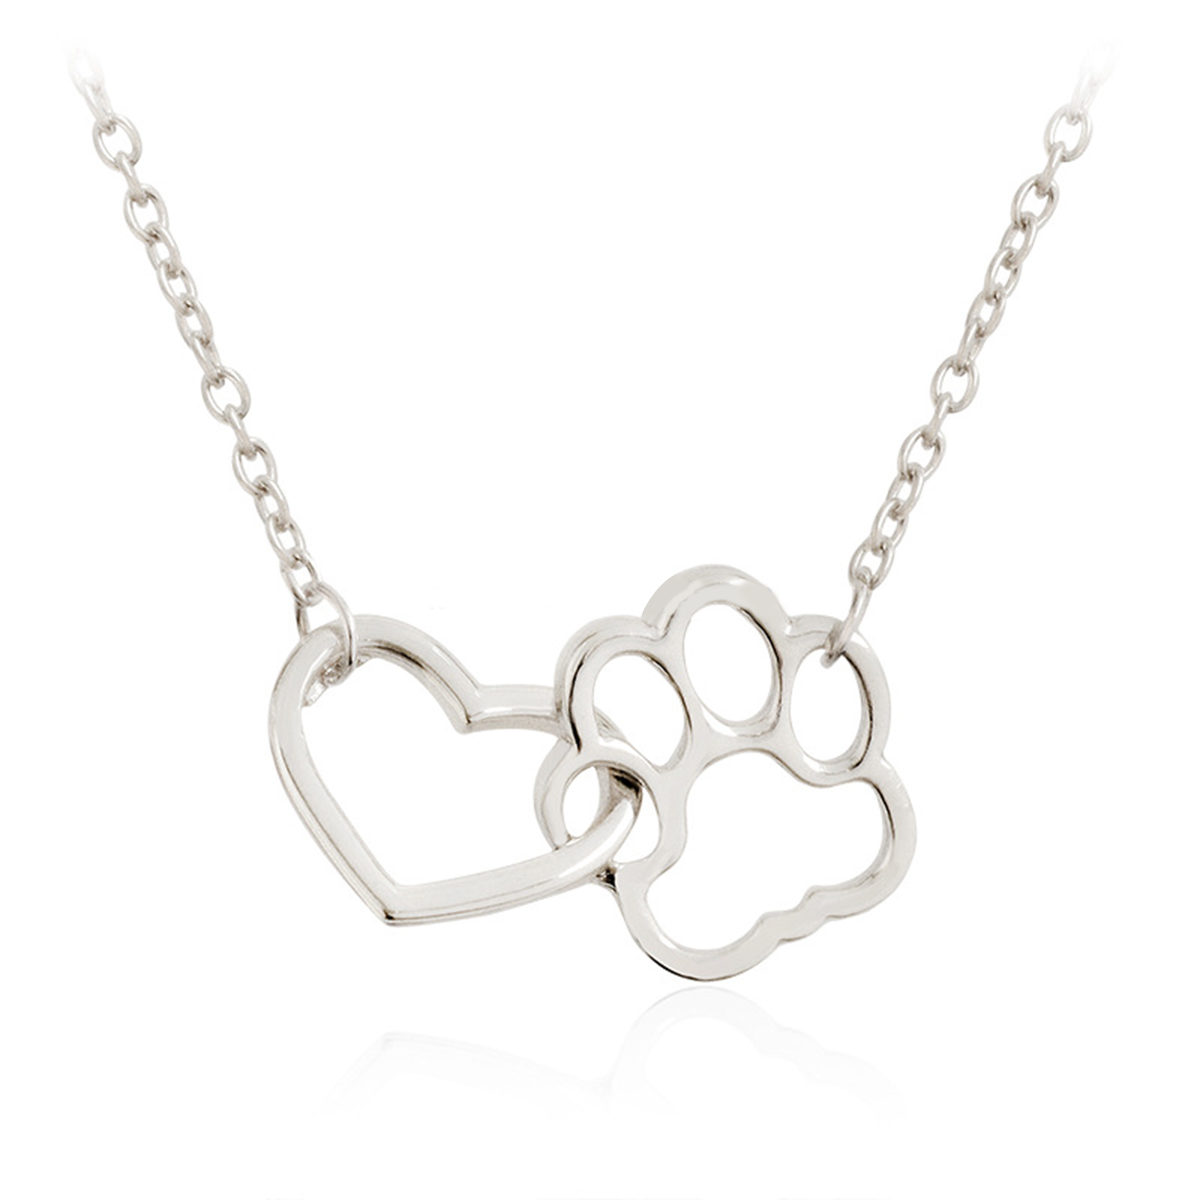 Pet paw footprint necklaces cute love heart pendant necklace women pet paw footprint necklaces cute love heart pendant necklace women girls aloadofball Images